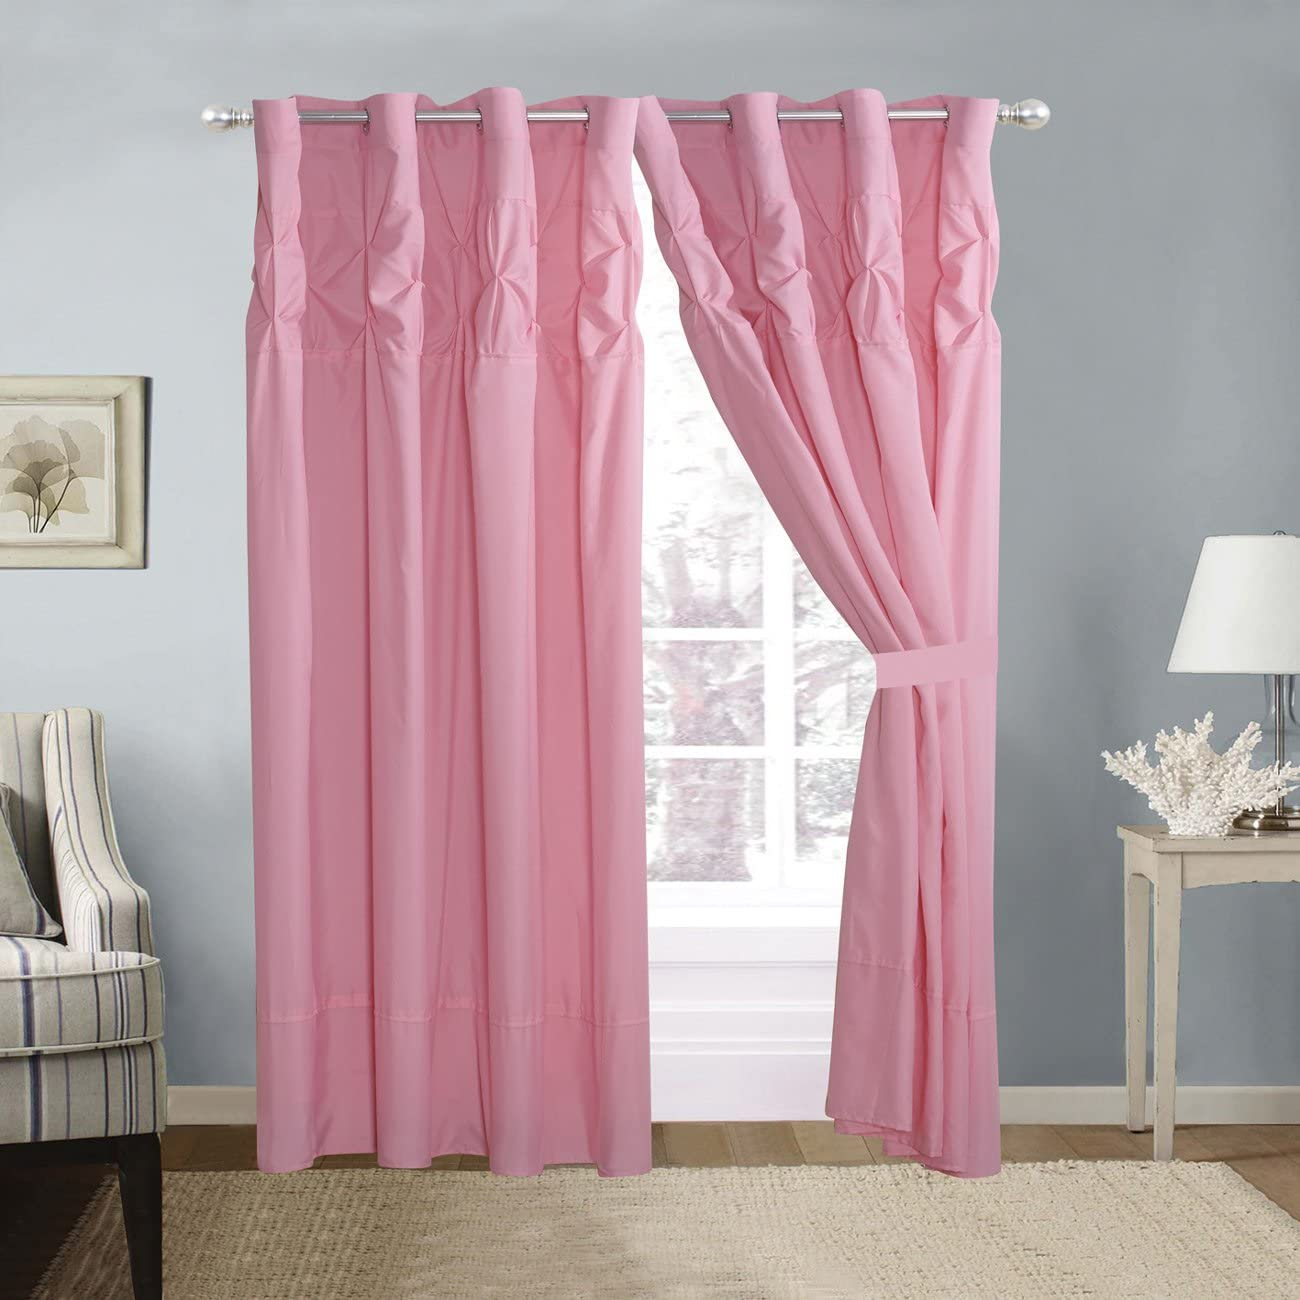 4 Piece Solid Pink Double-Needle Stitch Pinch Pleat Grommet Window Curtain Set 108 x 84-inch, 2 Panels and 2 Ties